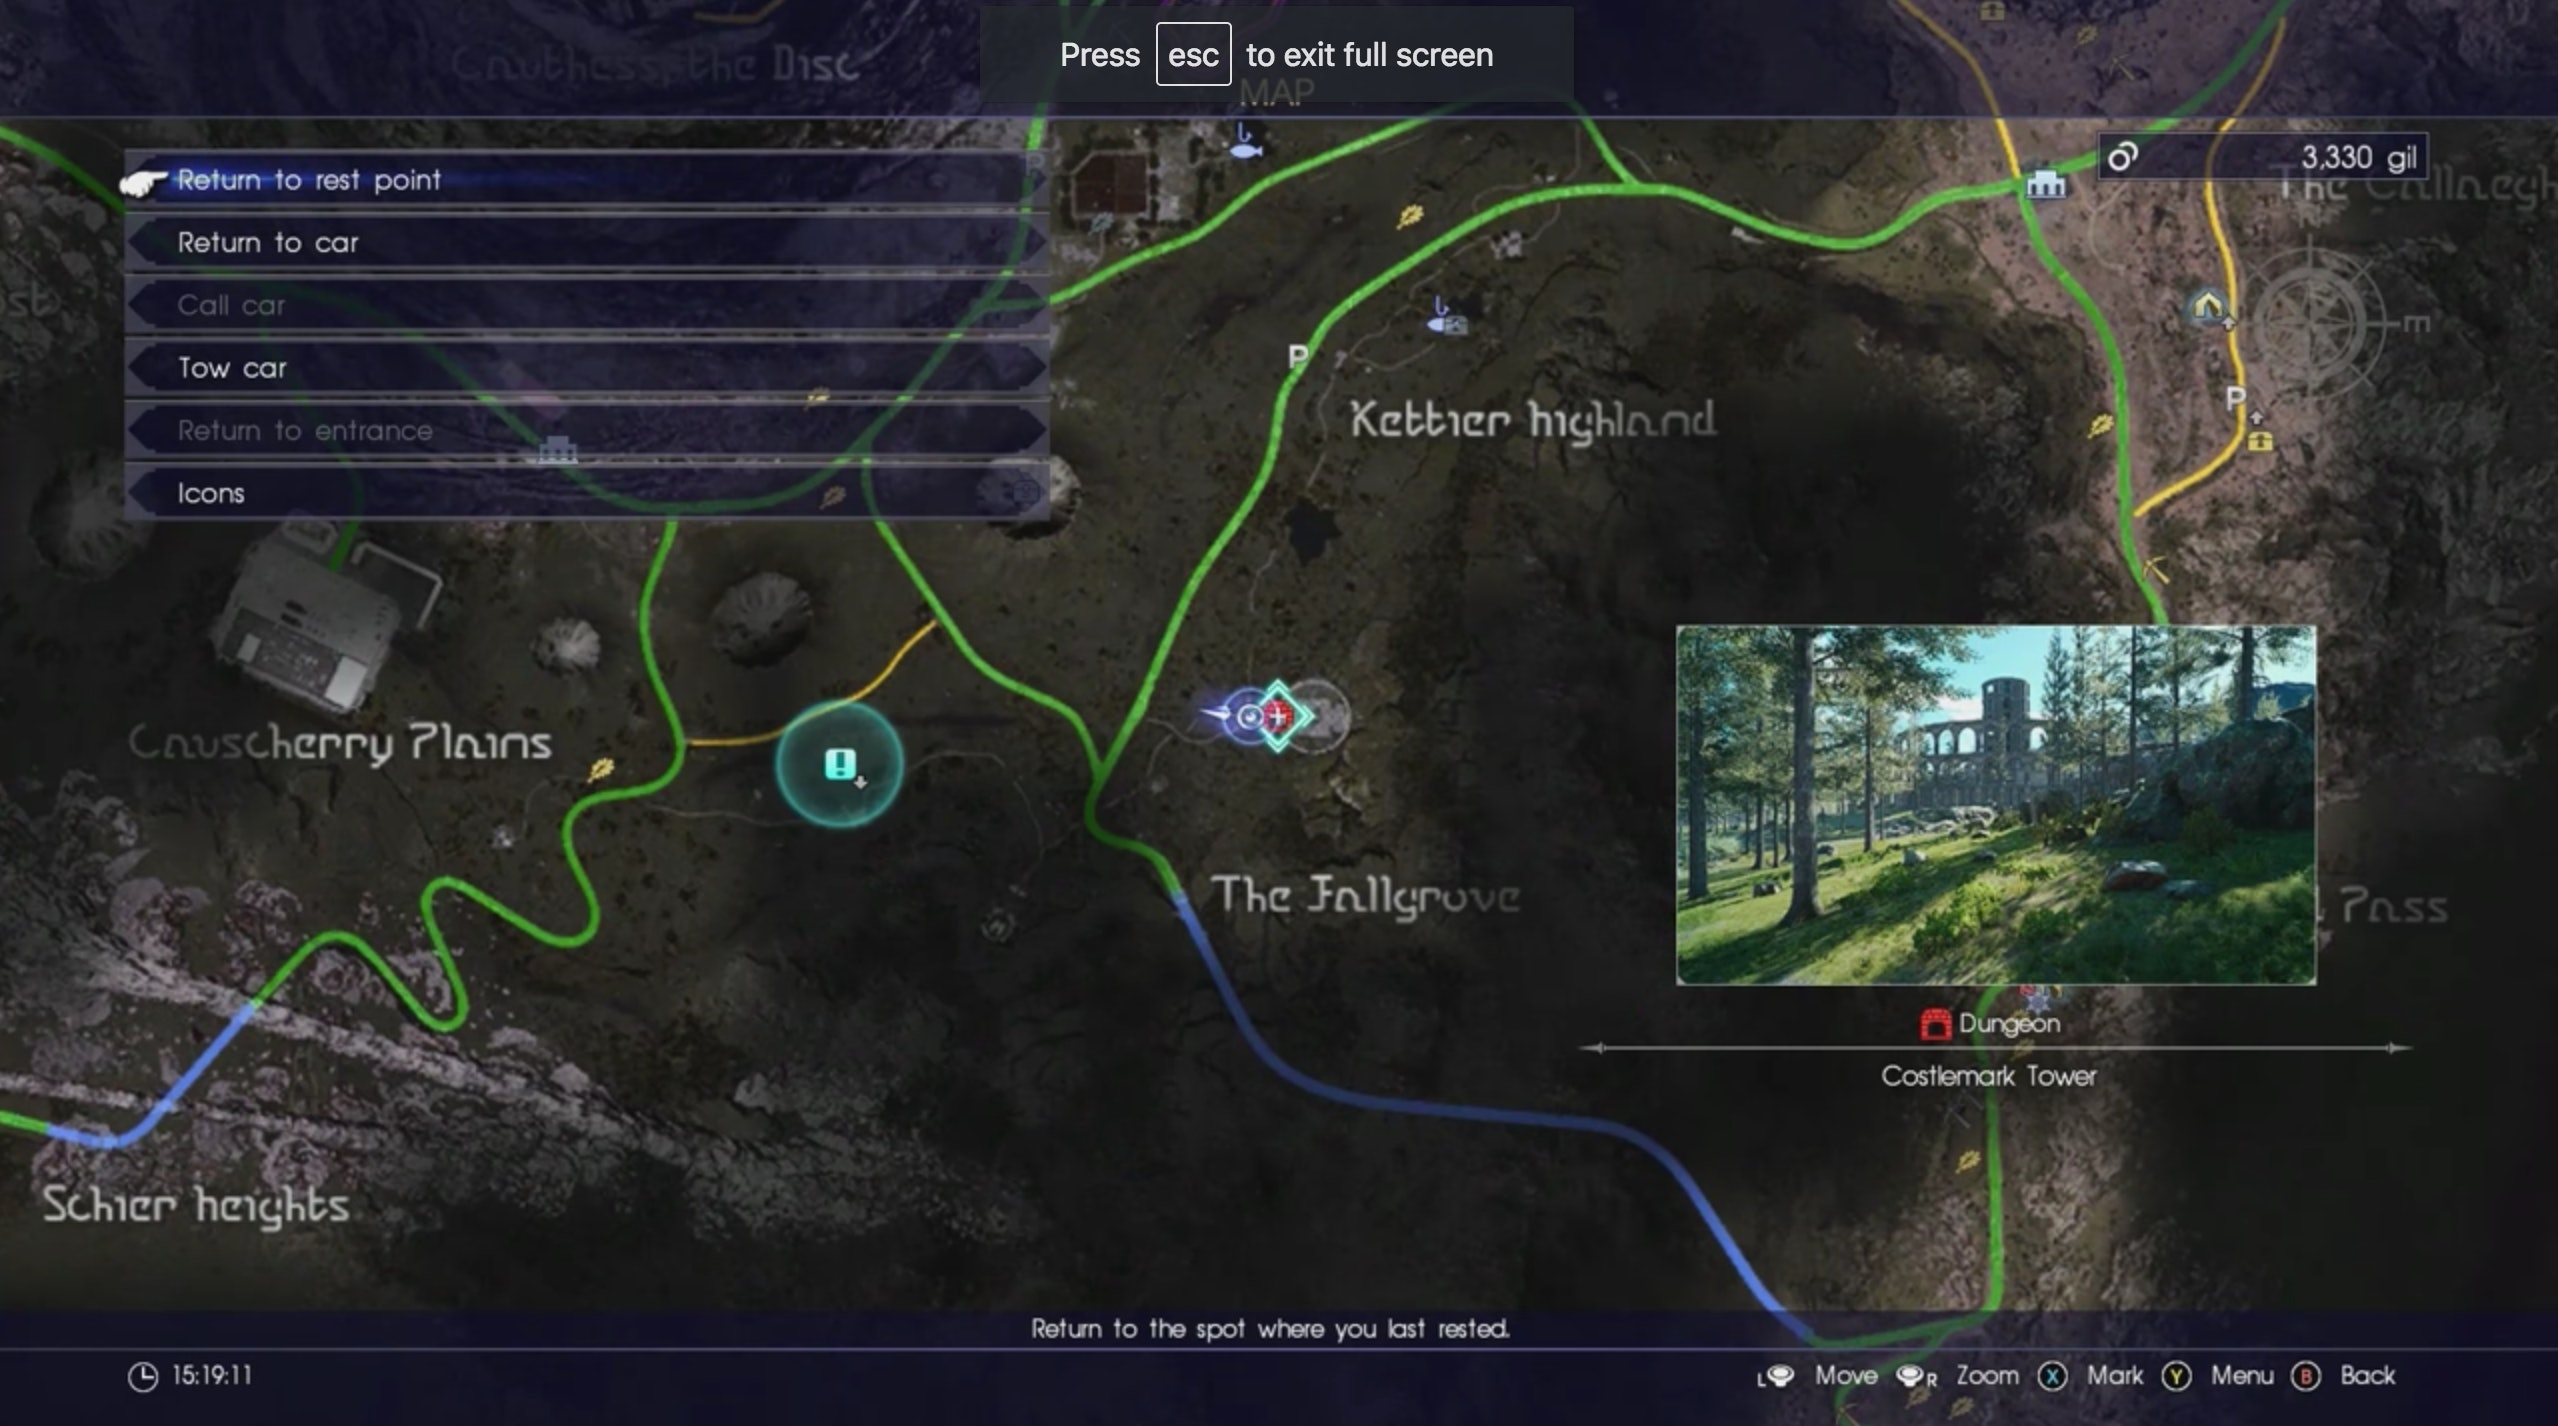 Final Fantasy 15' Royal Arms Locations: Full guide, maps and